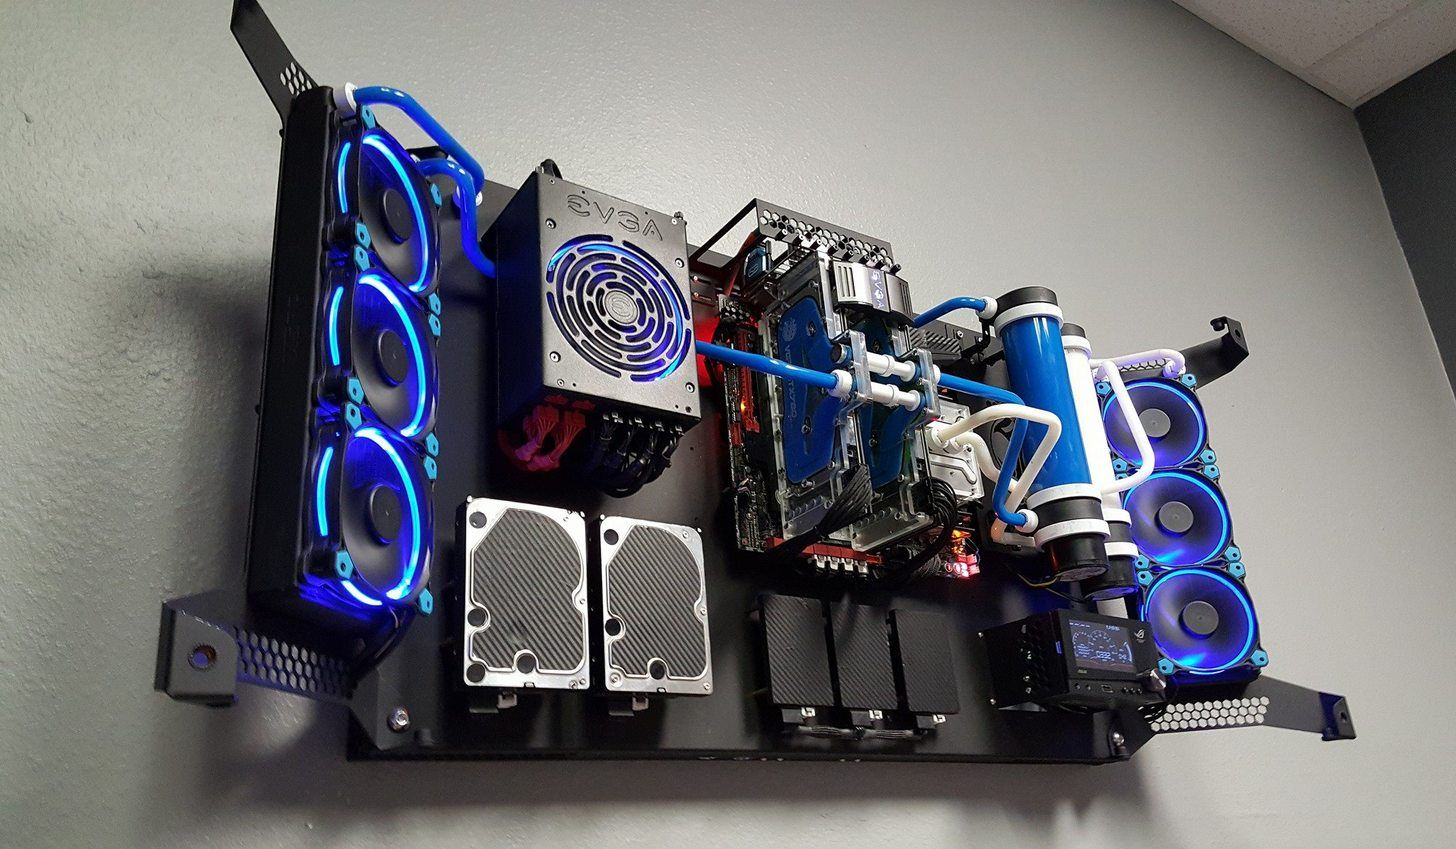 Evolution Of Feros wall mounted PC case  PC Rigs  Wall mounted pc Wall computer Computer build